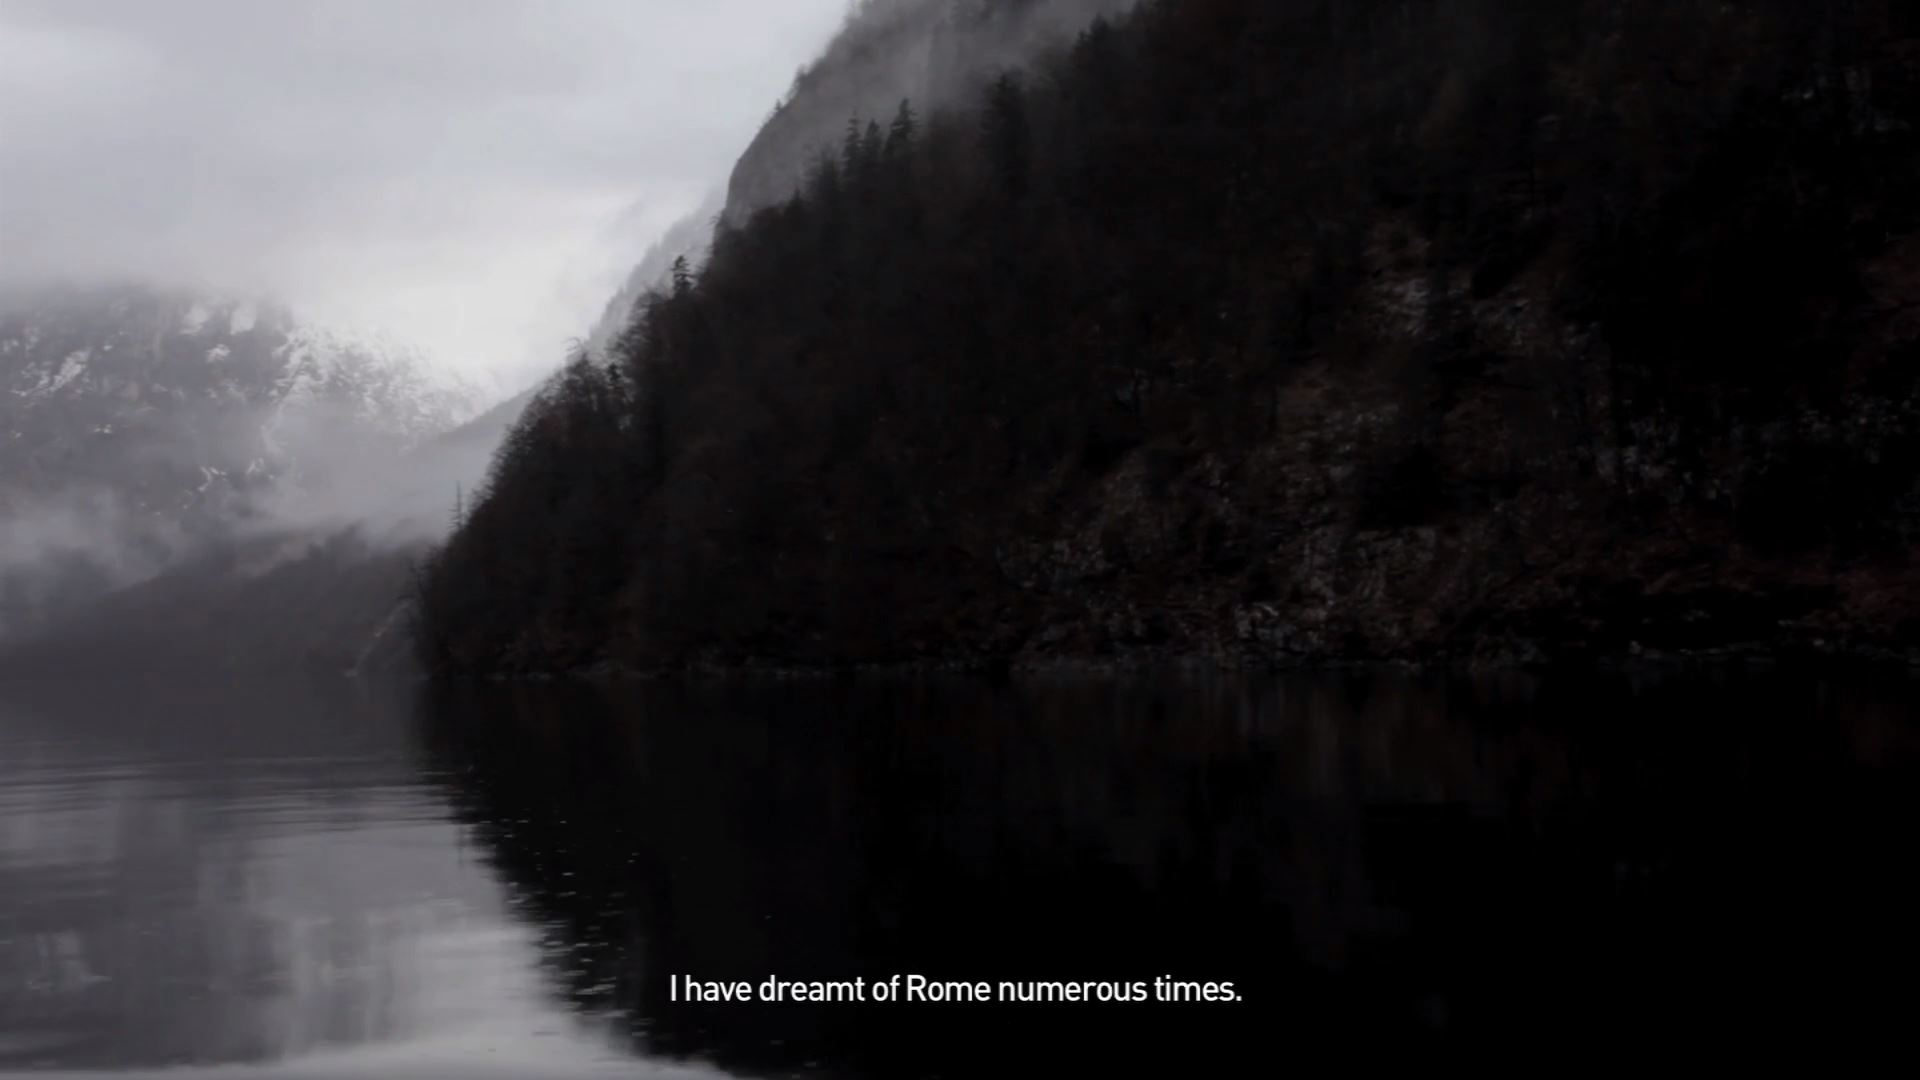 Pilar Mata Dupont, Mountain (still), 2015, Single channel video projection with audio, 8.11 mins, Courtesy the artist and Moor Contemporary, Perth.